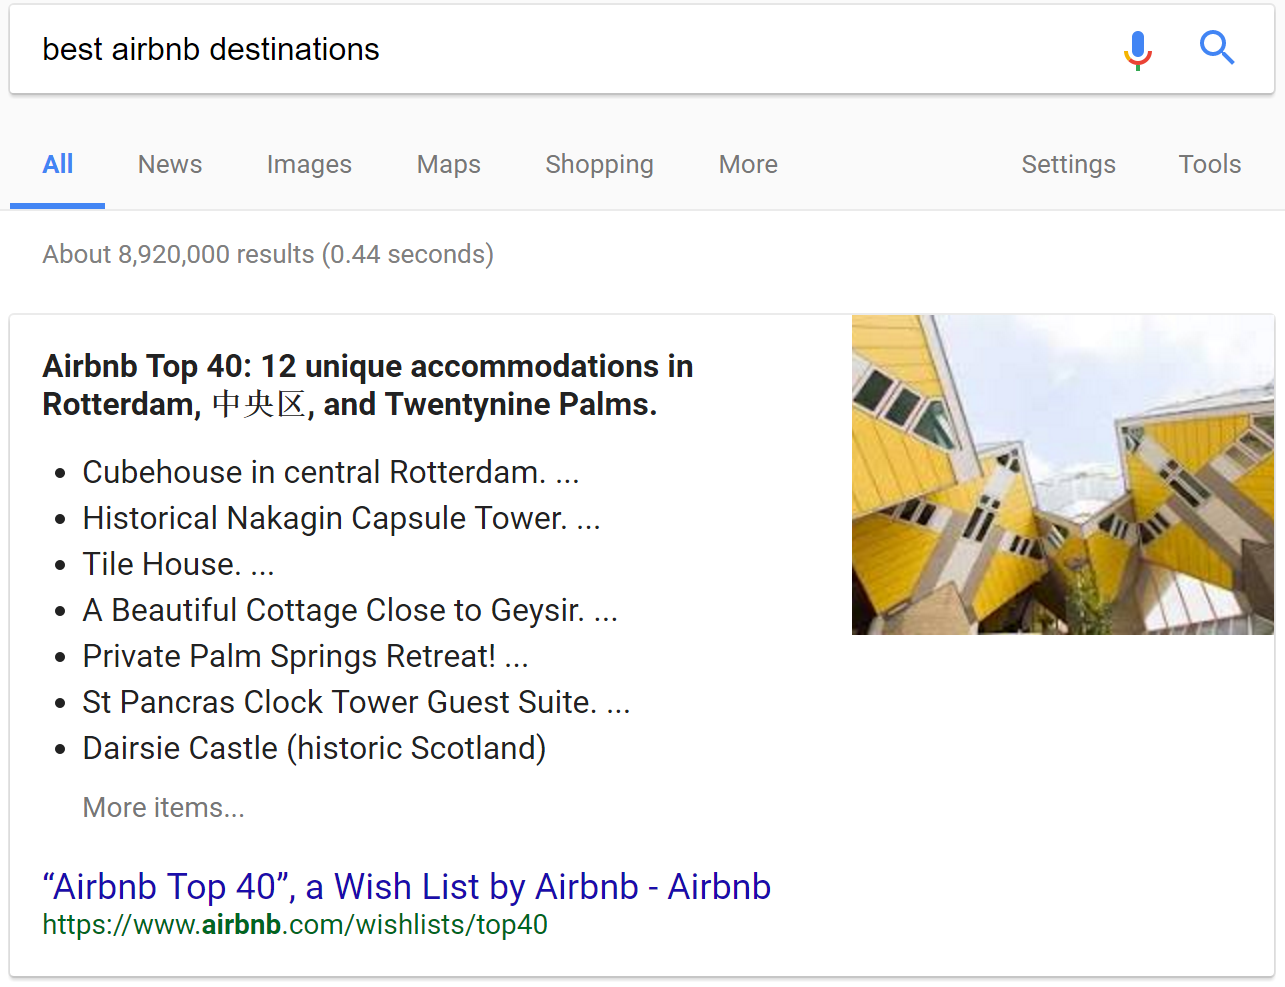 Airbnb 404 Error Best Airbnb Destinations